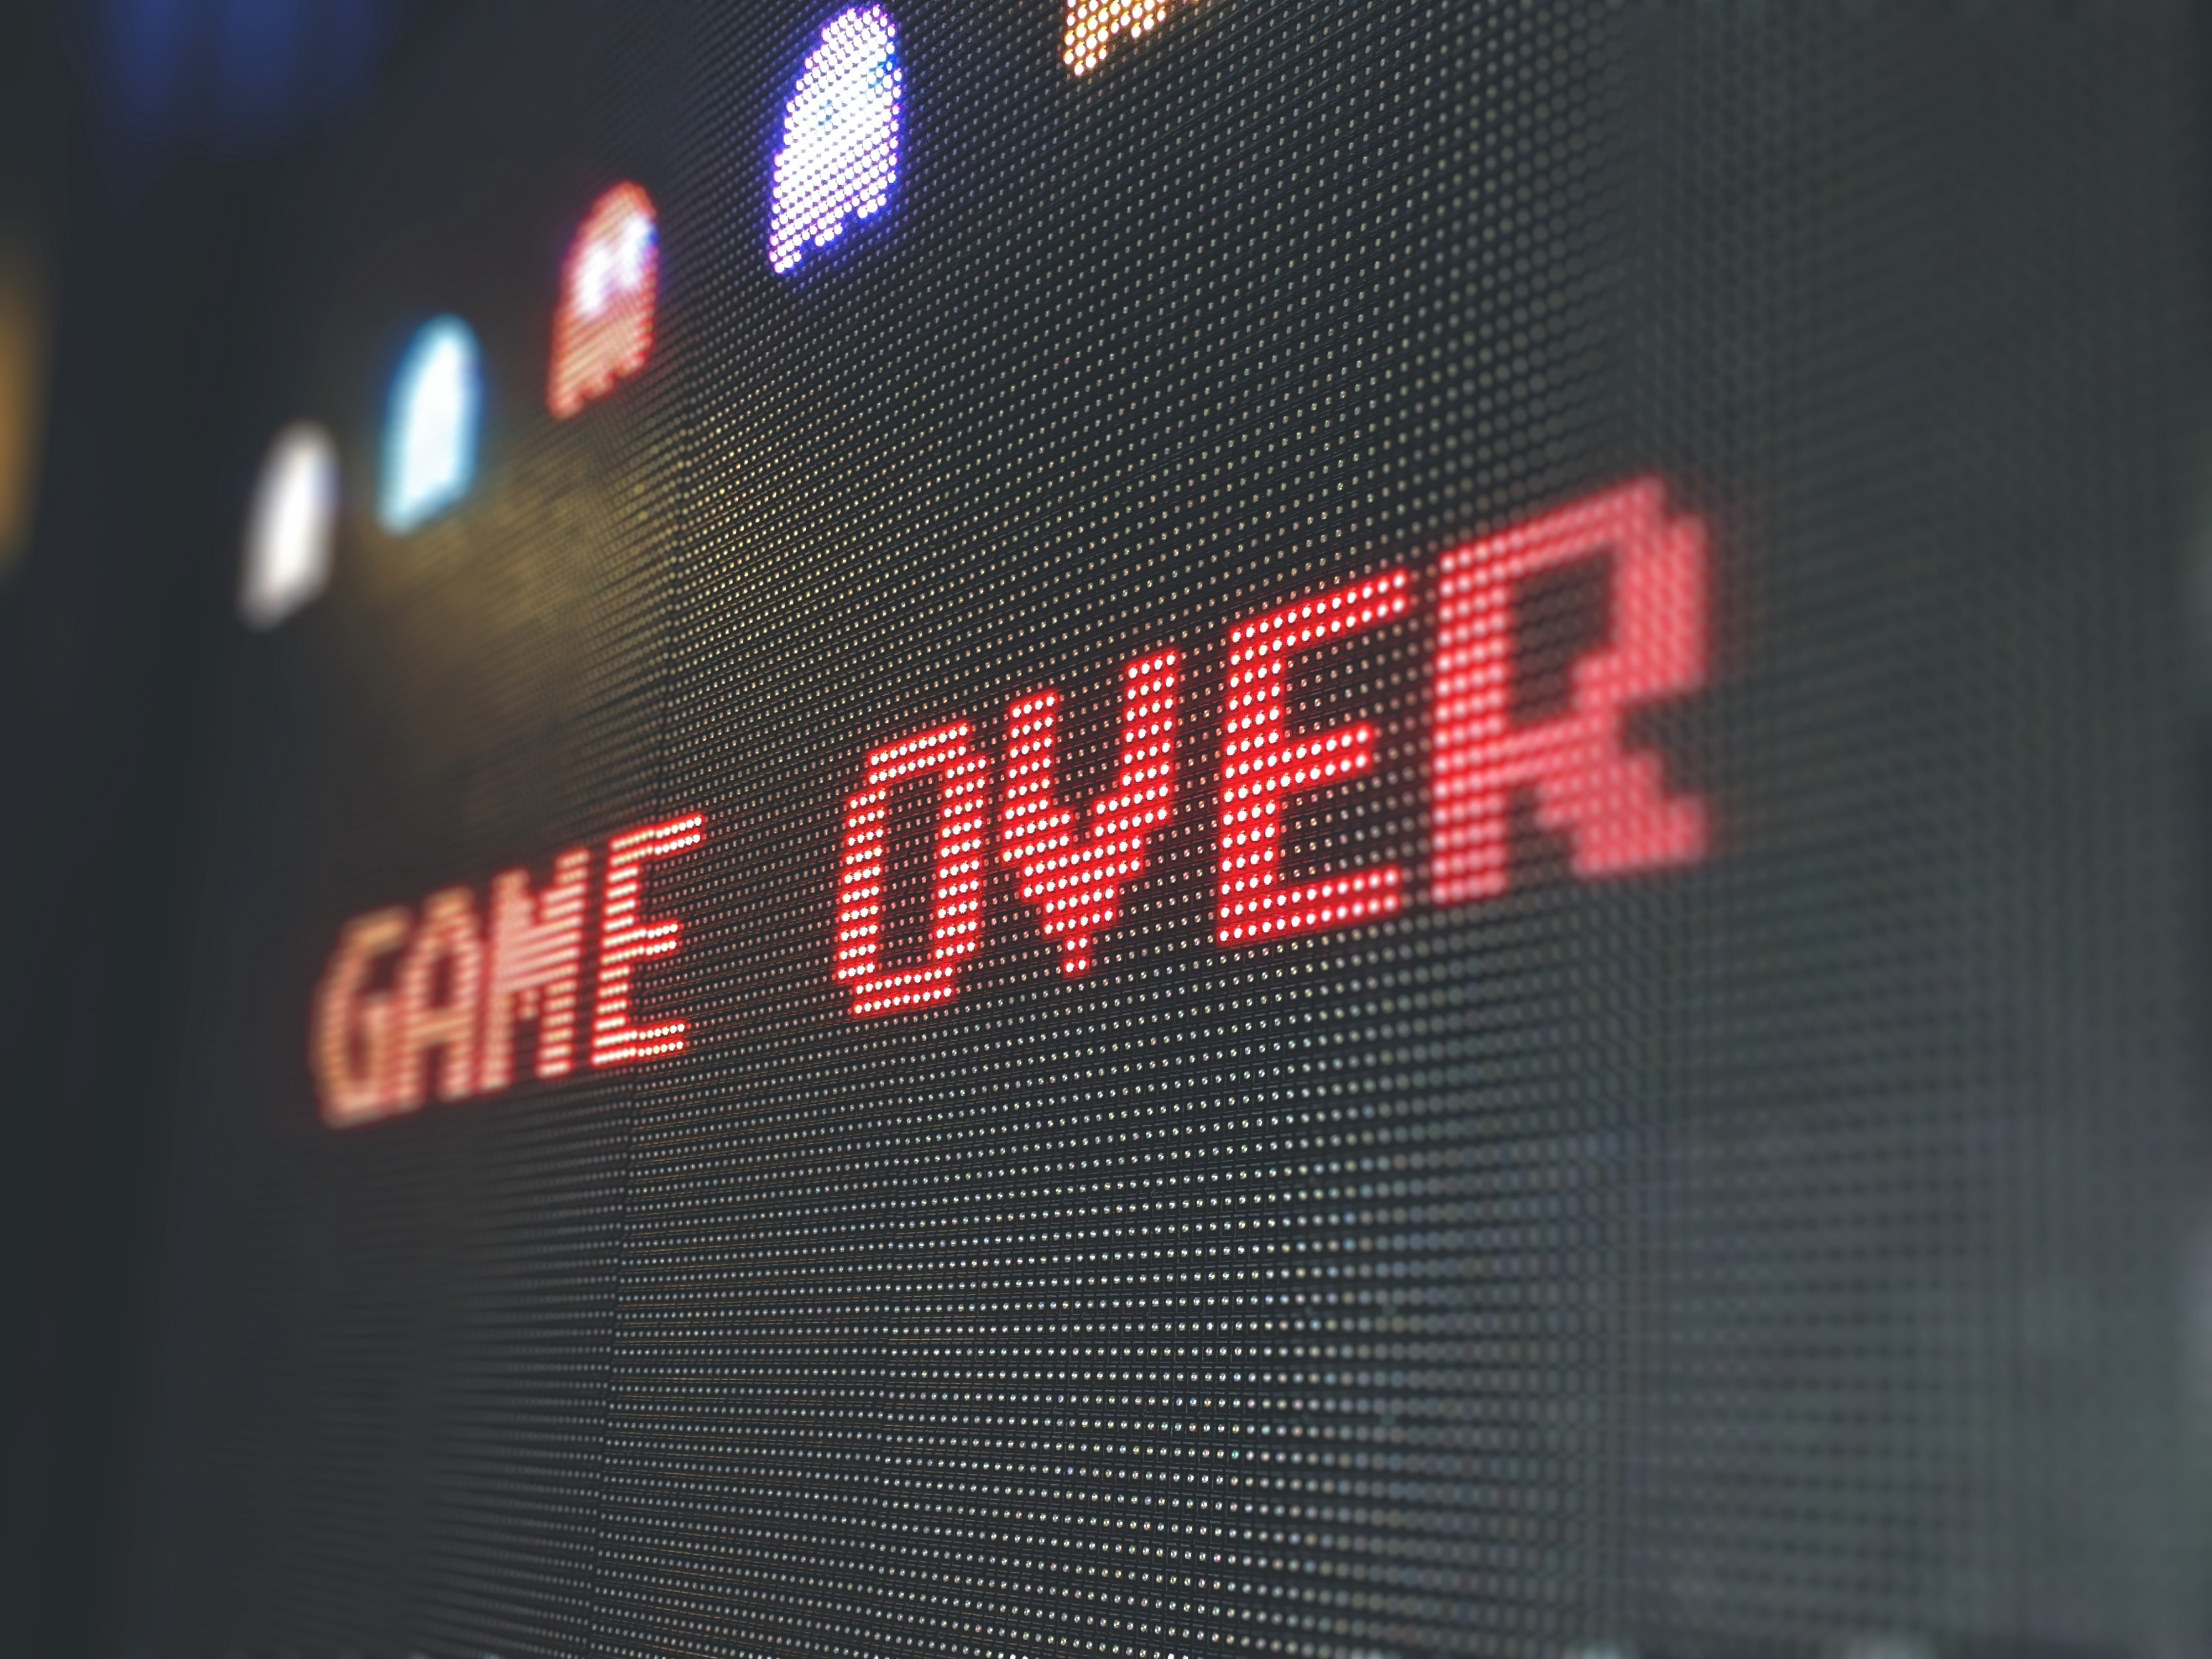 A video game screen displaying GAME OVER